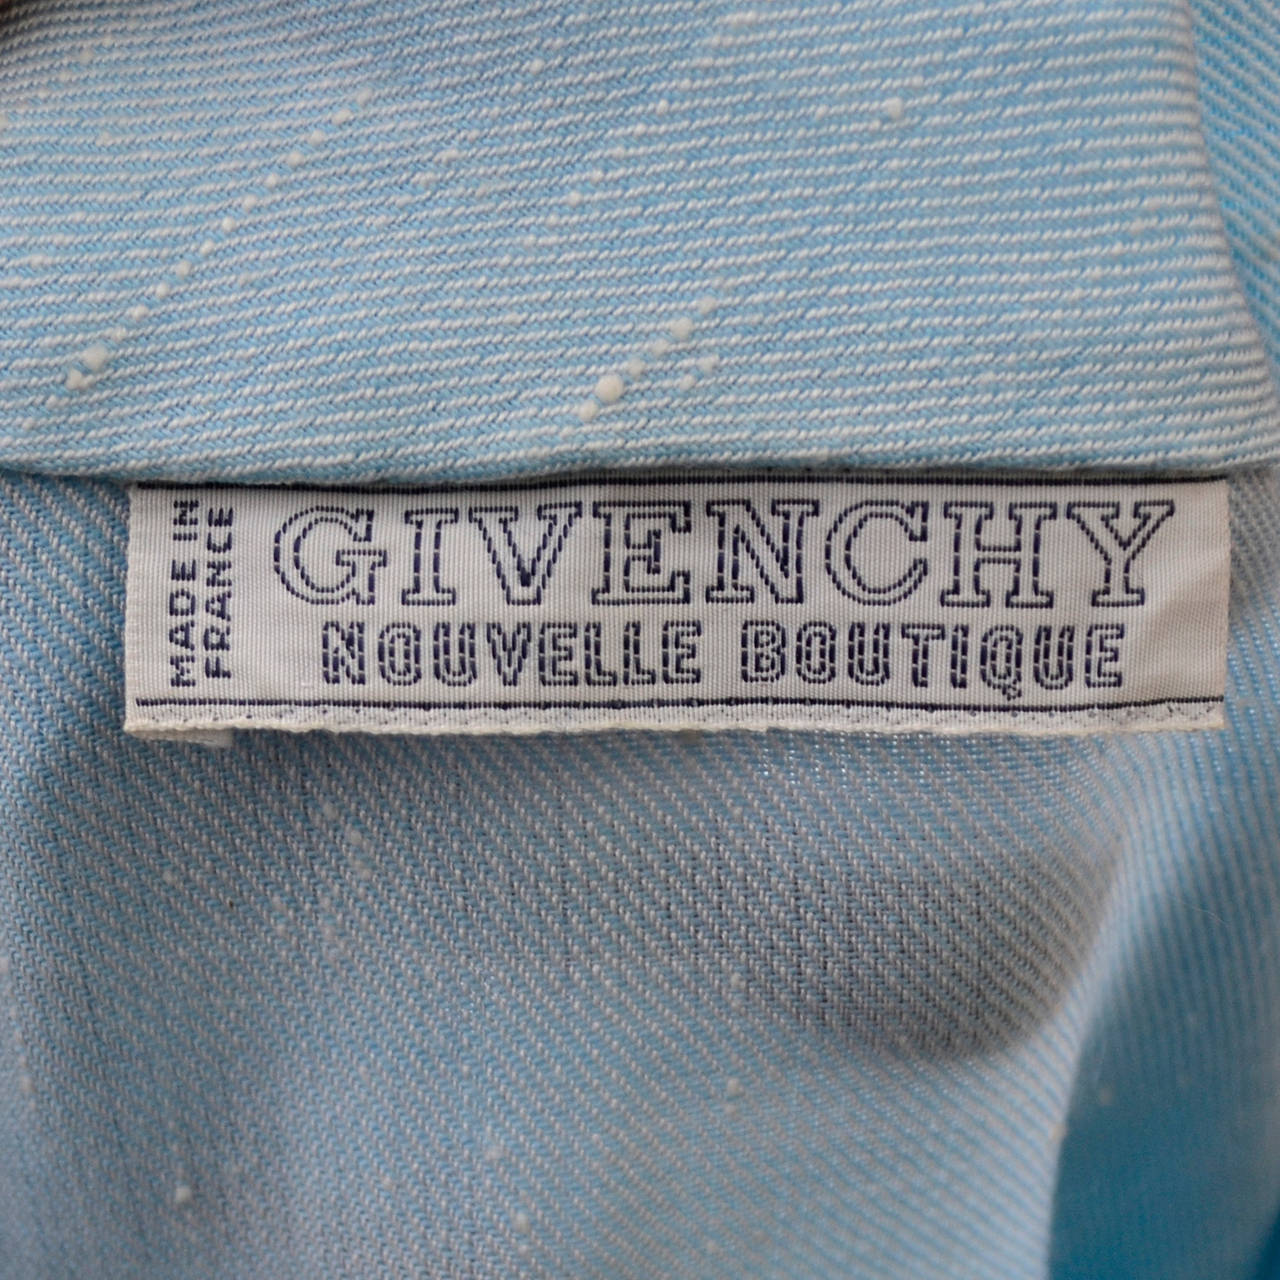 Givenchy Nouvelle Boutique 1970s Blue Vintage Dress and Striped Coat Outfit 9